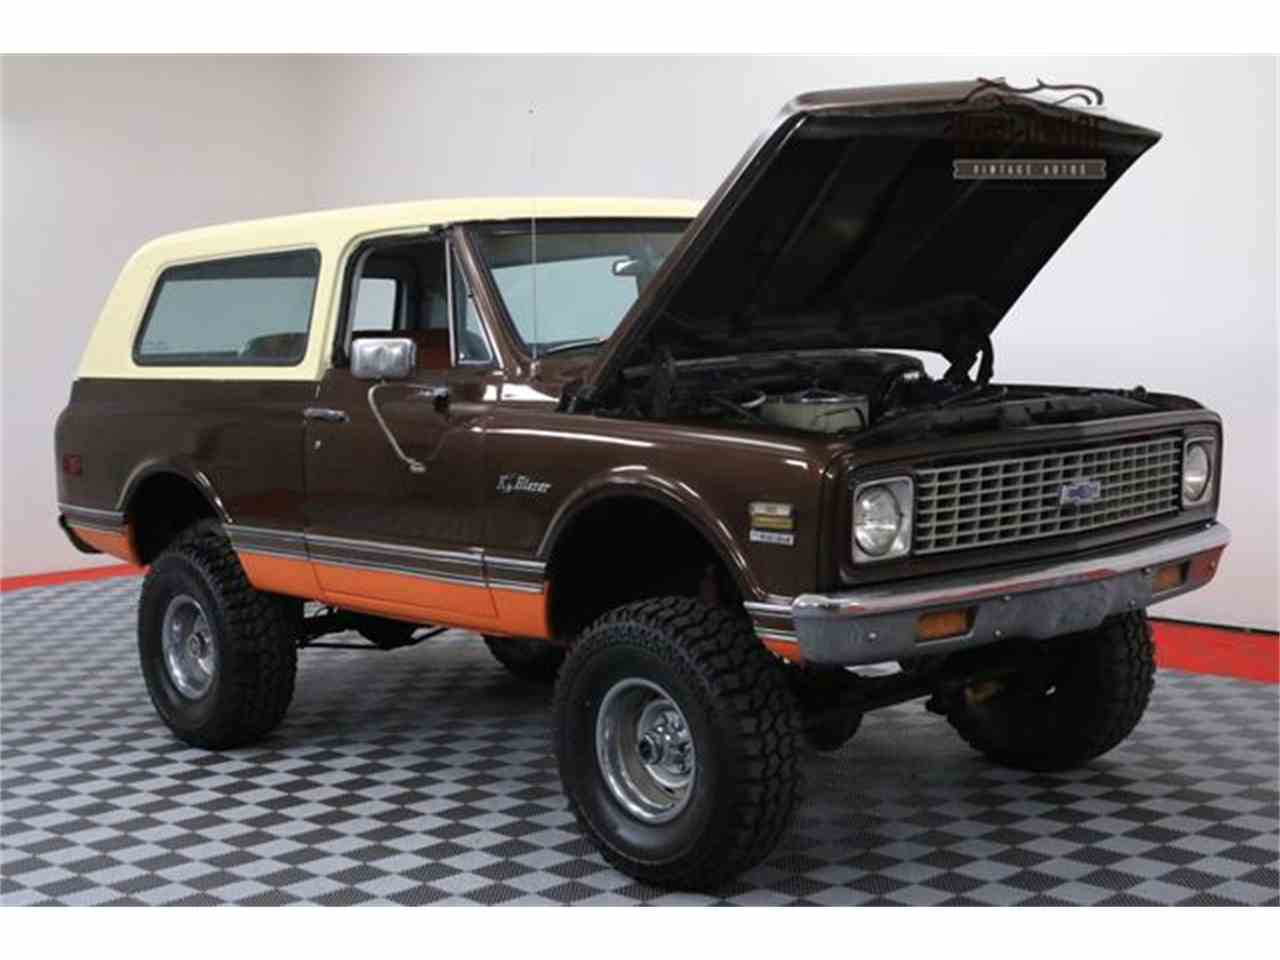 Large Picture of '71 Chevrolet Blazer located in Colorado - $24,900.00 Offered by Worldwide Vintage Autos - LI5Q